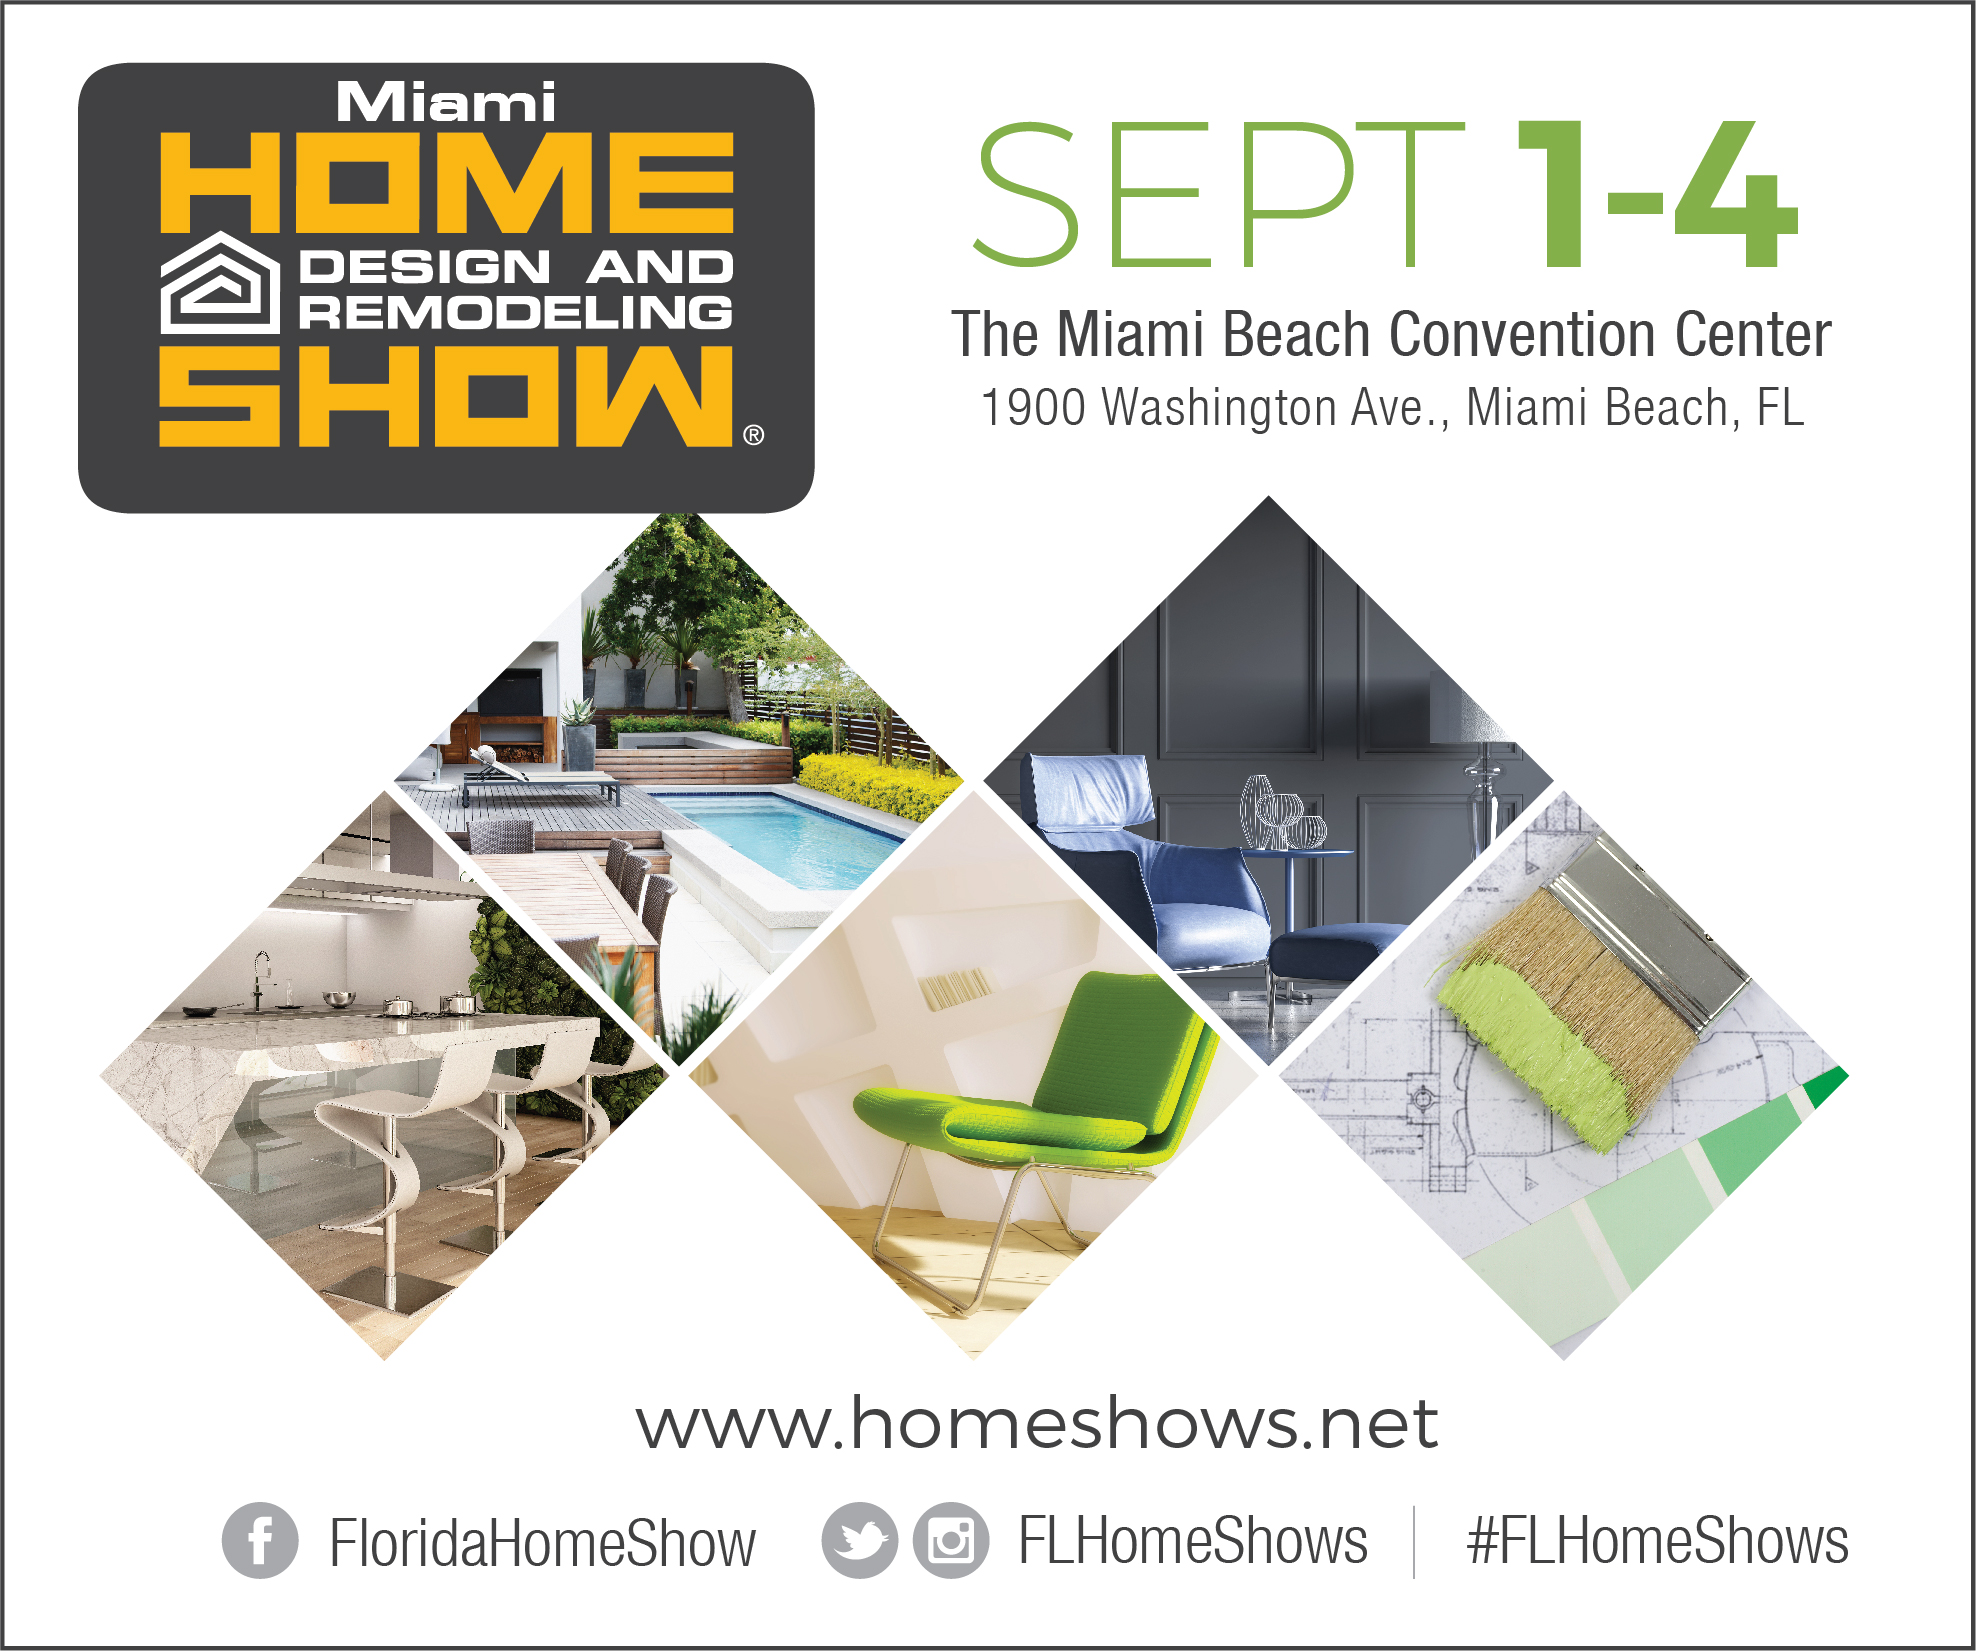 Miami Home Design and Remodeling Show 9/1/17, 9/2/17, 9/3/17, 9/4/17 ...